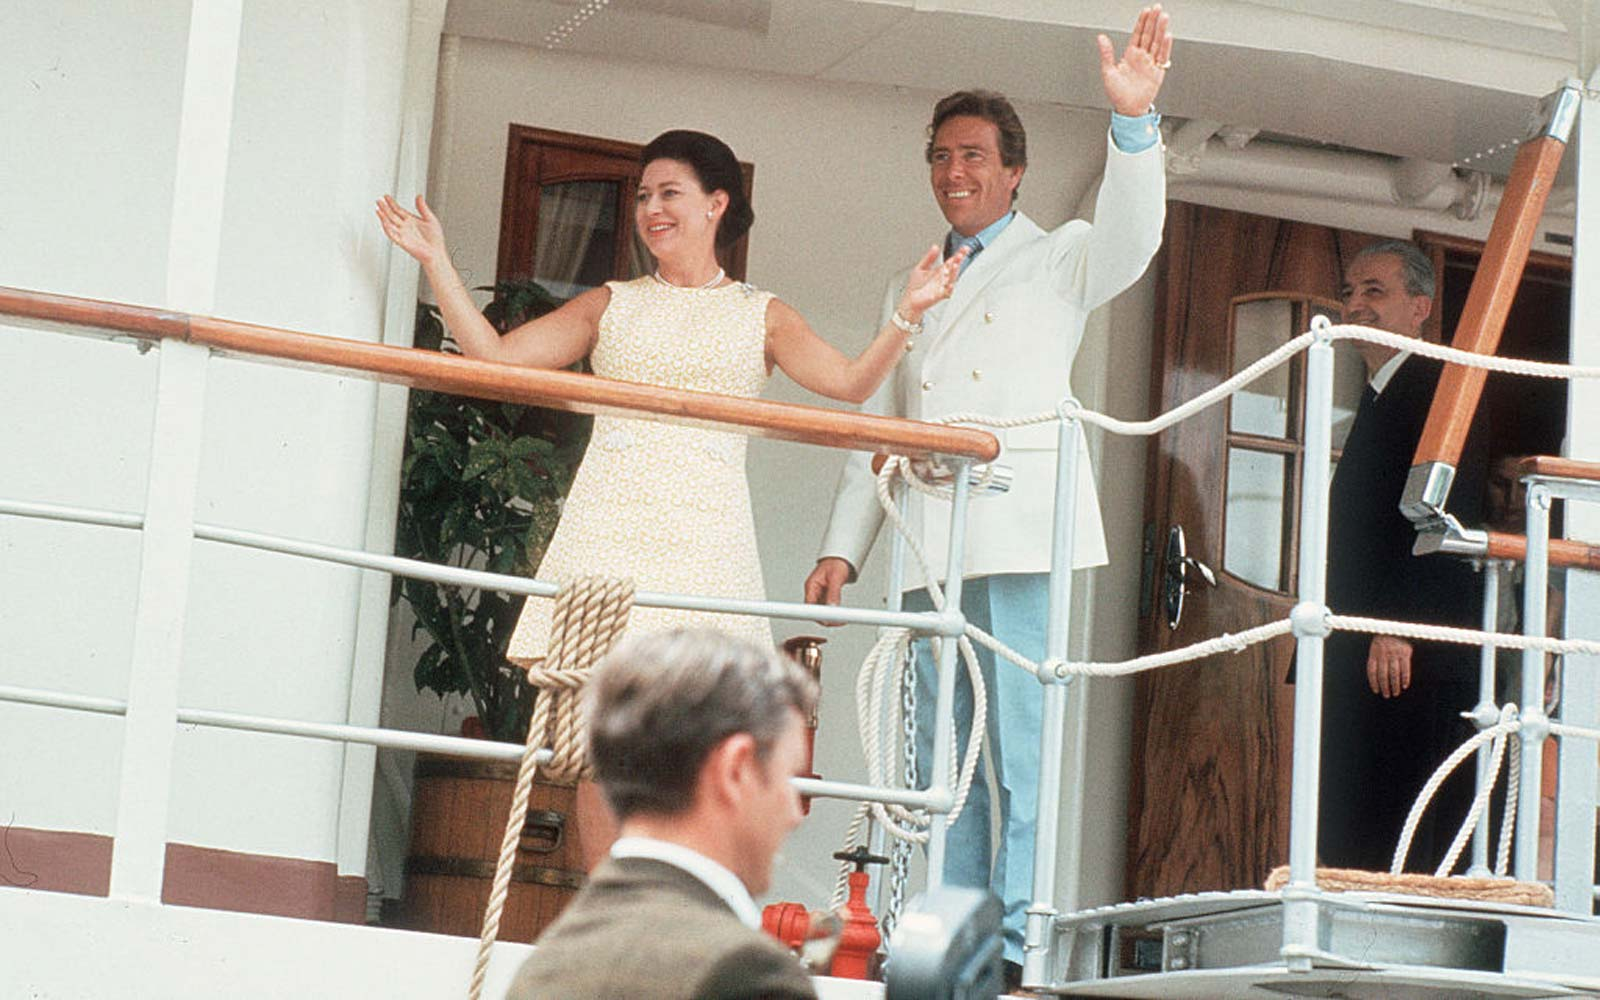 Princess Margaret and husband Tony Armstrong-Jones wave from the deck on the Royal Yacht Britannia during their 6-week Caribbean honeymoon cruise